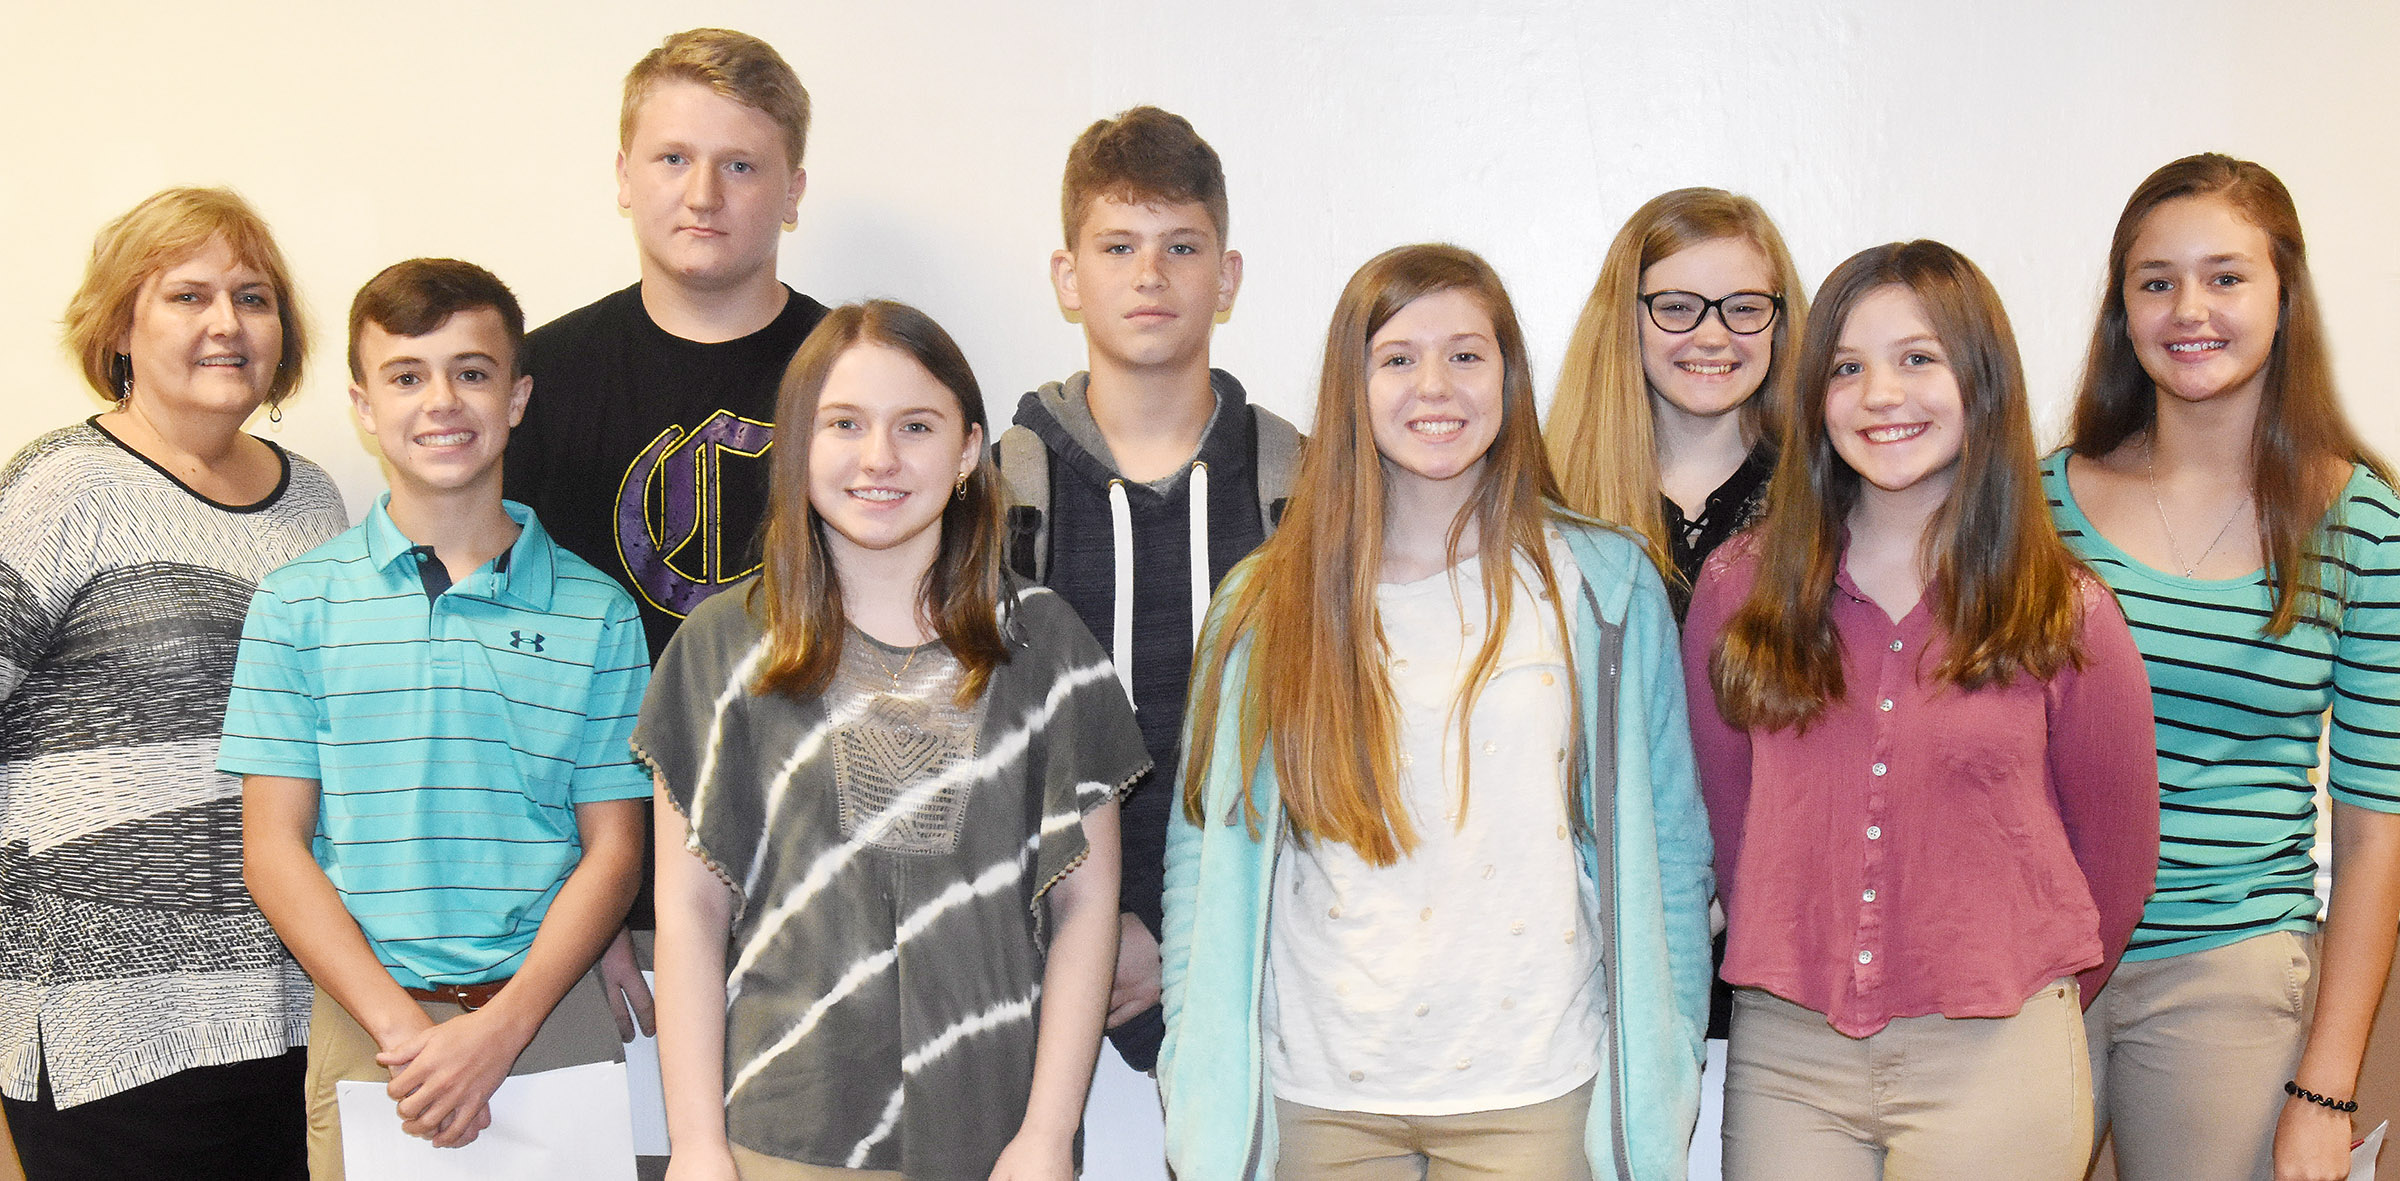 CMS students participating in the LOCK program are, from left, front, eighth-graders Chase Hord, Leigh Hicks, Alysa Howard and Mikaela Scharbrough. Back, CMS guidance assistant Debbie Edwards and eighth-graders Levi Dicken, Weston Mattingly, Whitney Frashure and Haylee Allen. Absent from the photo is eighth-grader Seth Hash.